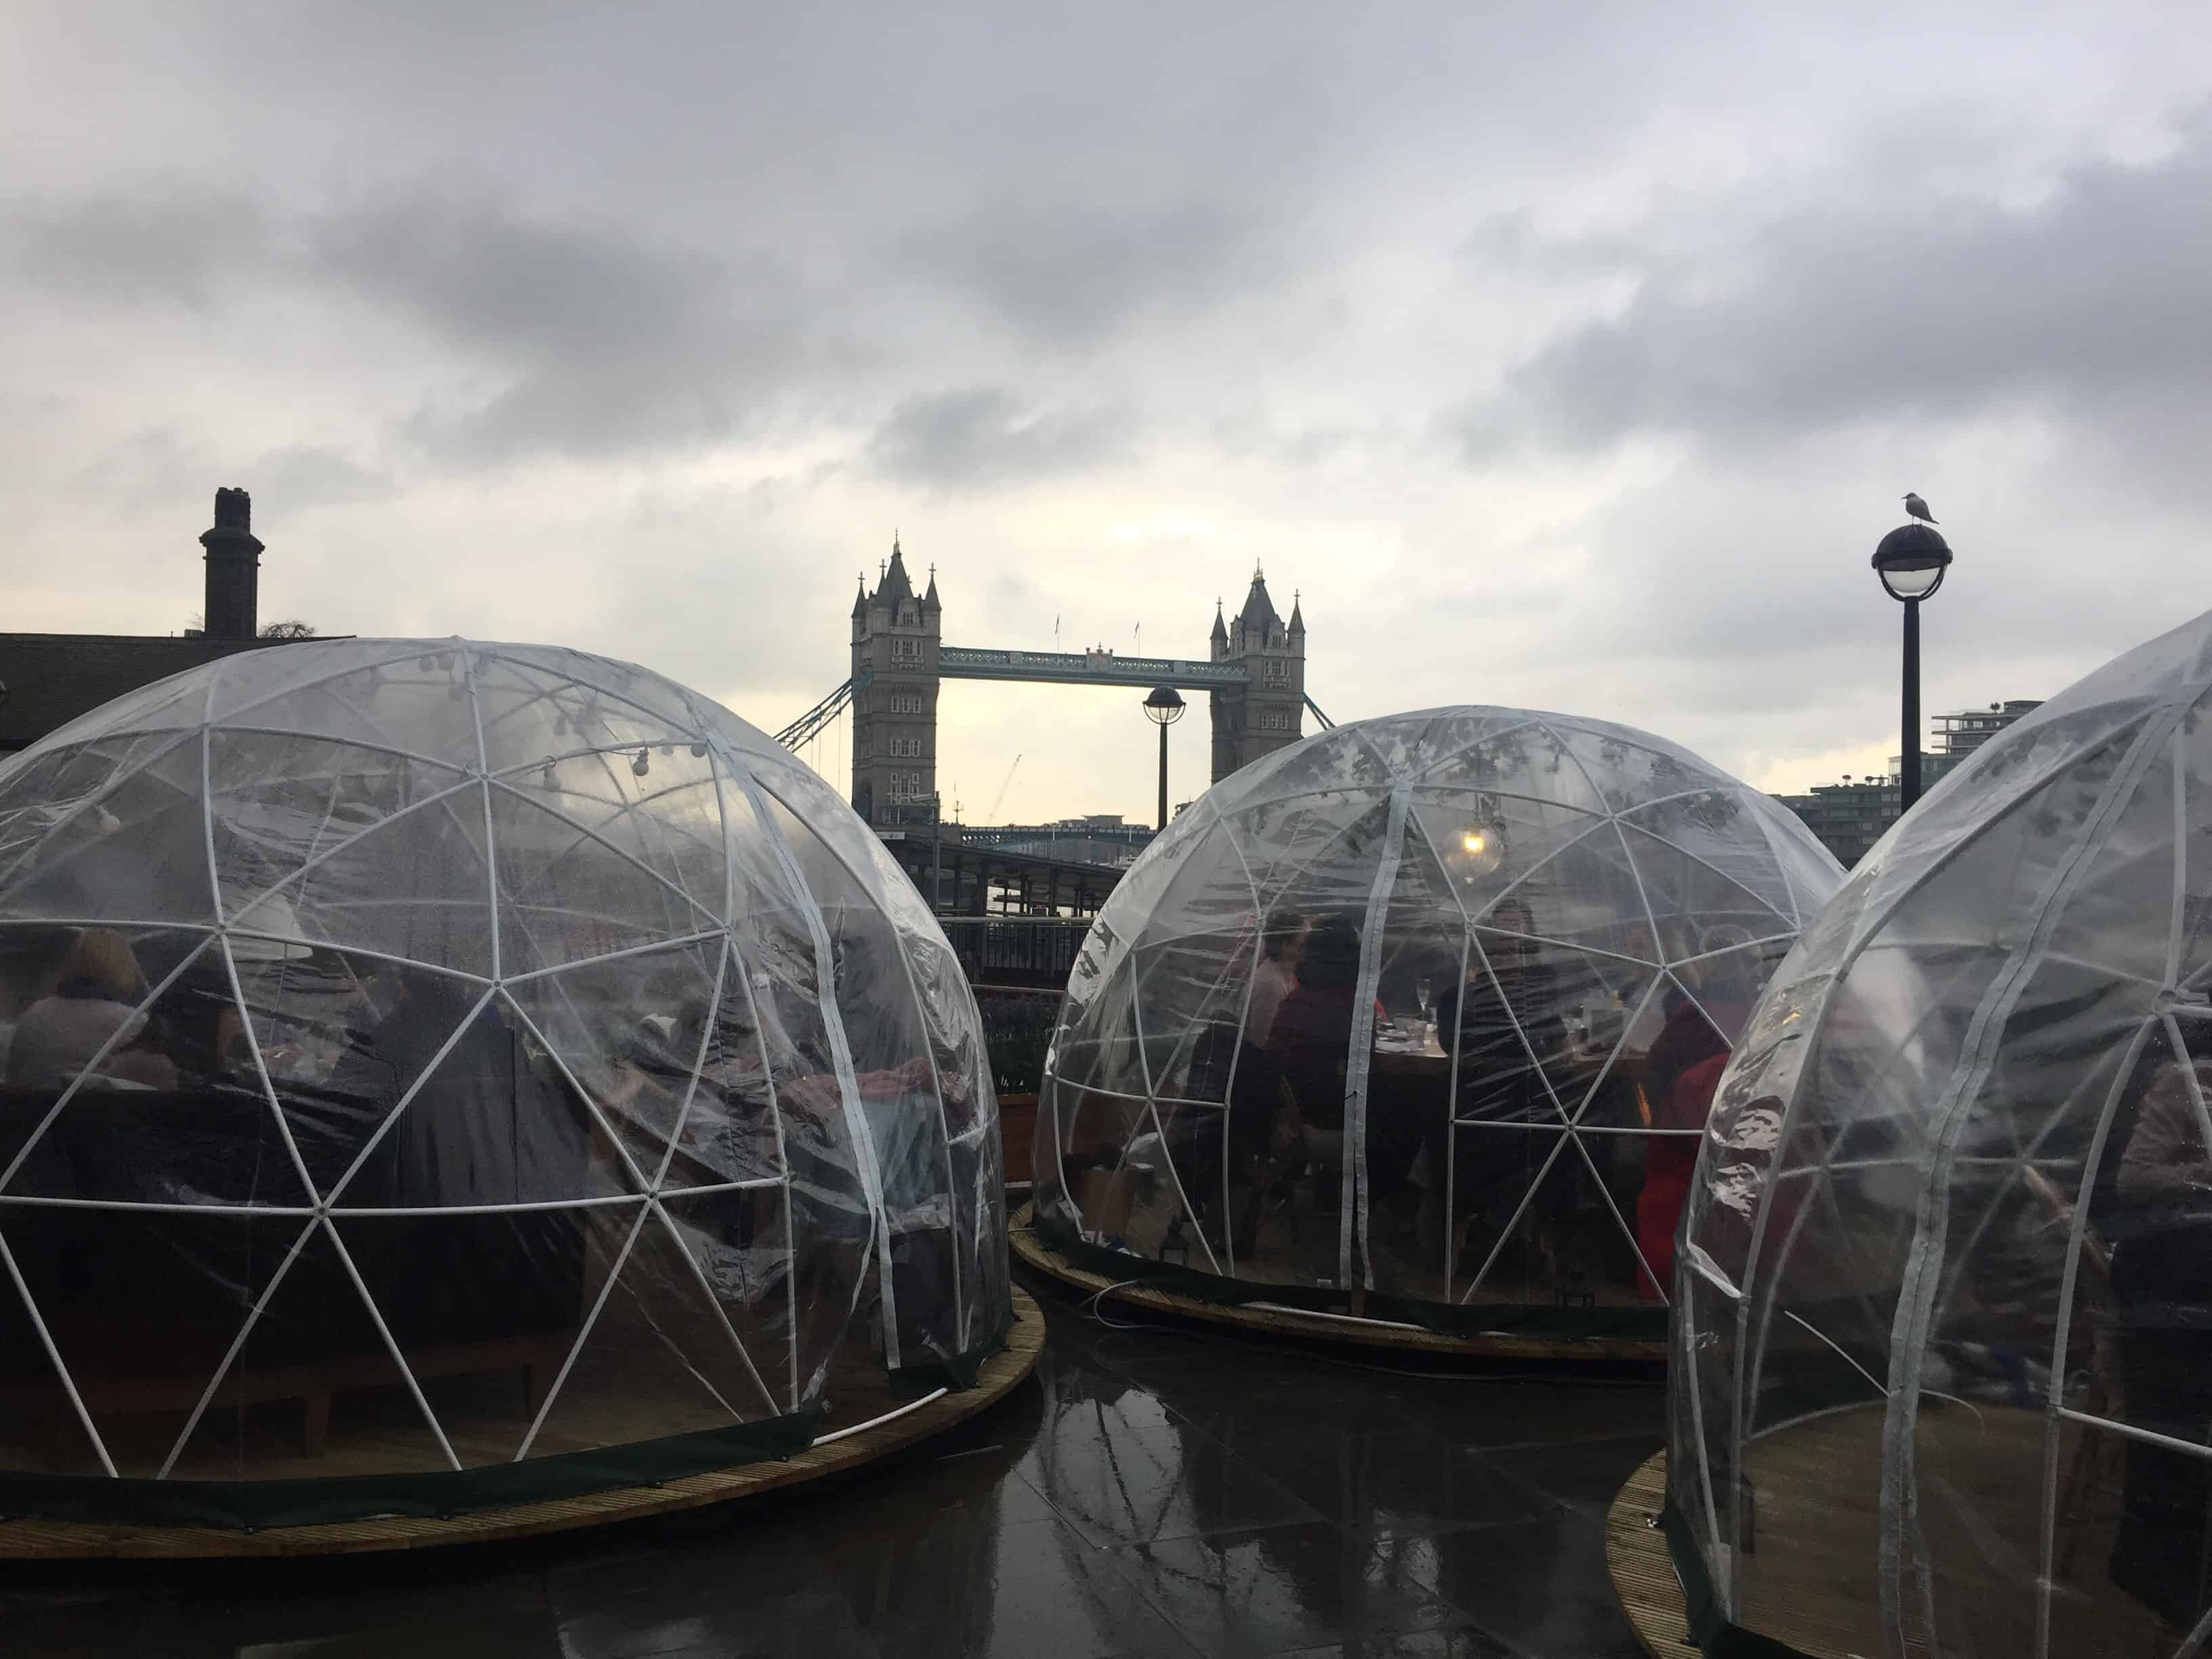 Igloos by the river